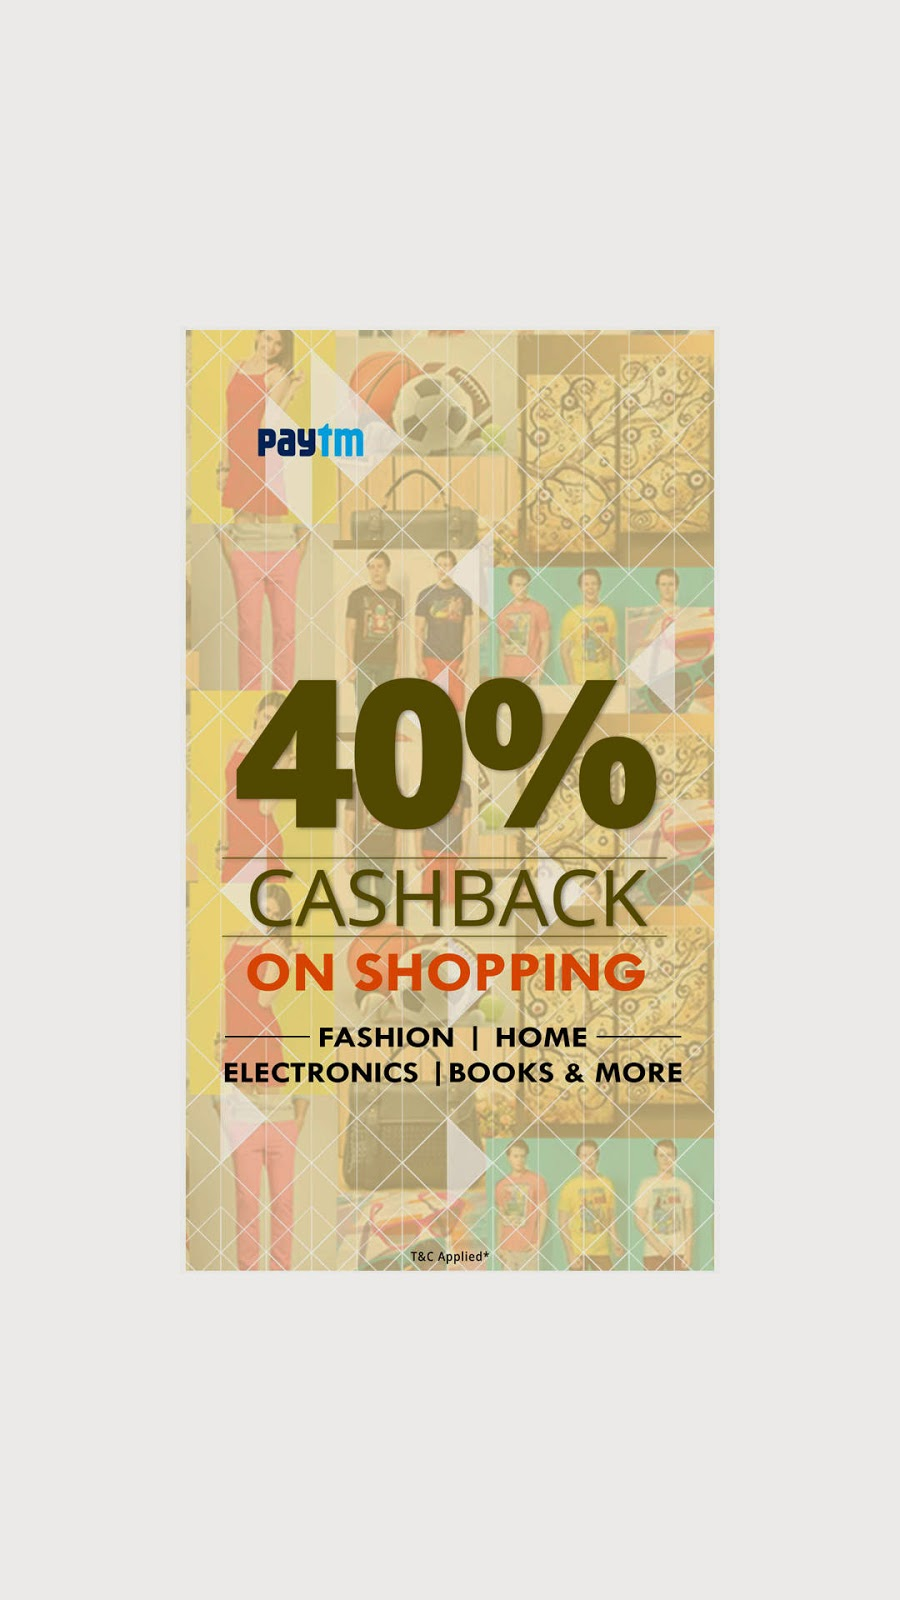 PAYTM : 40% Cashback On Product Shopping On Paytm @ Rs.10